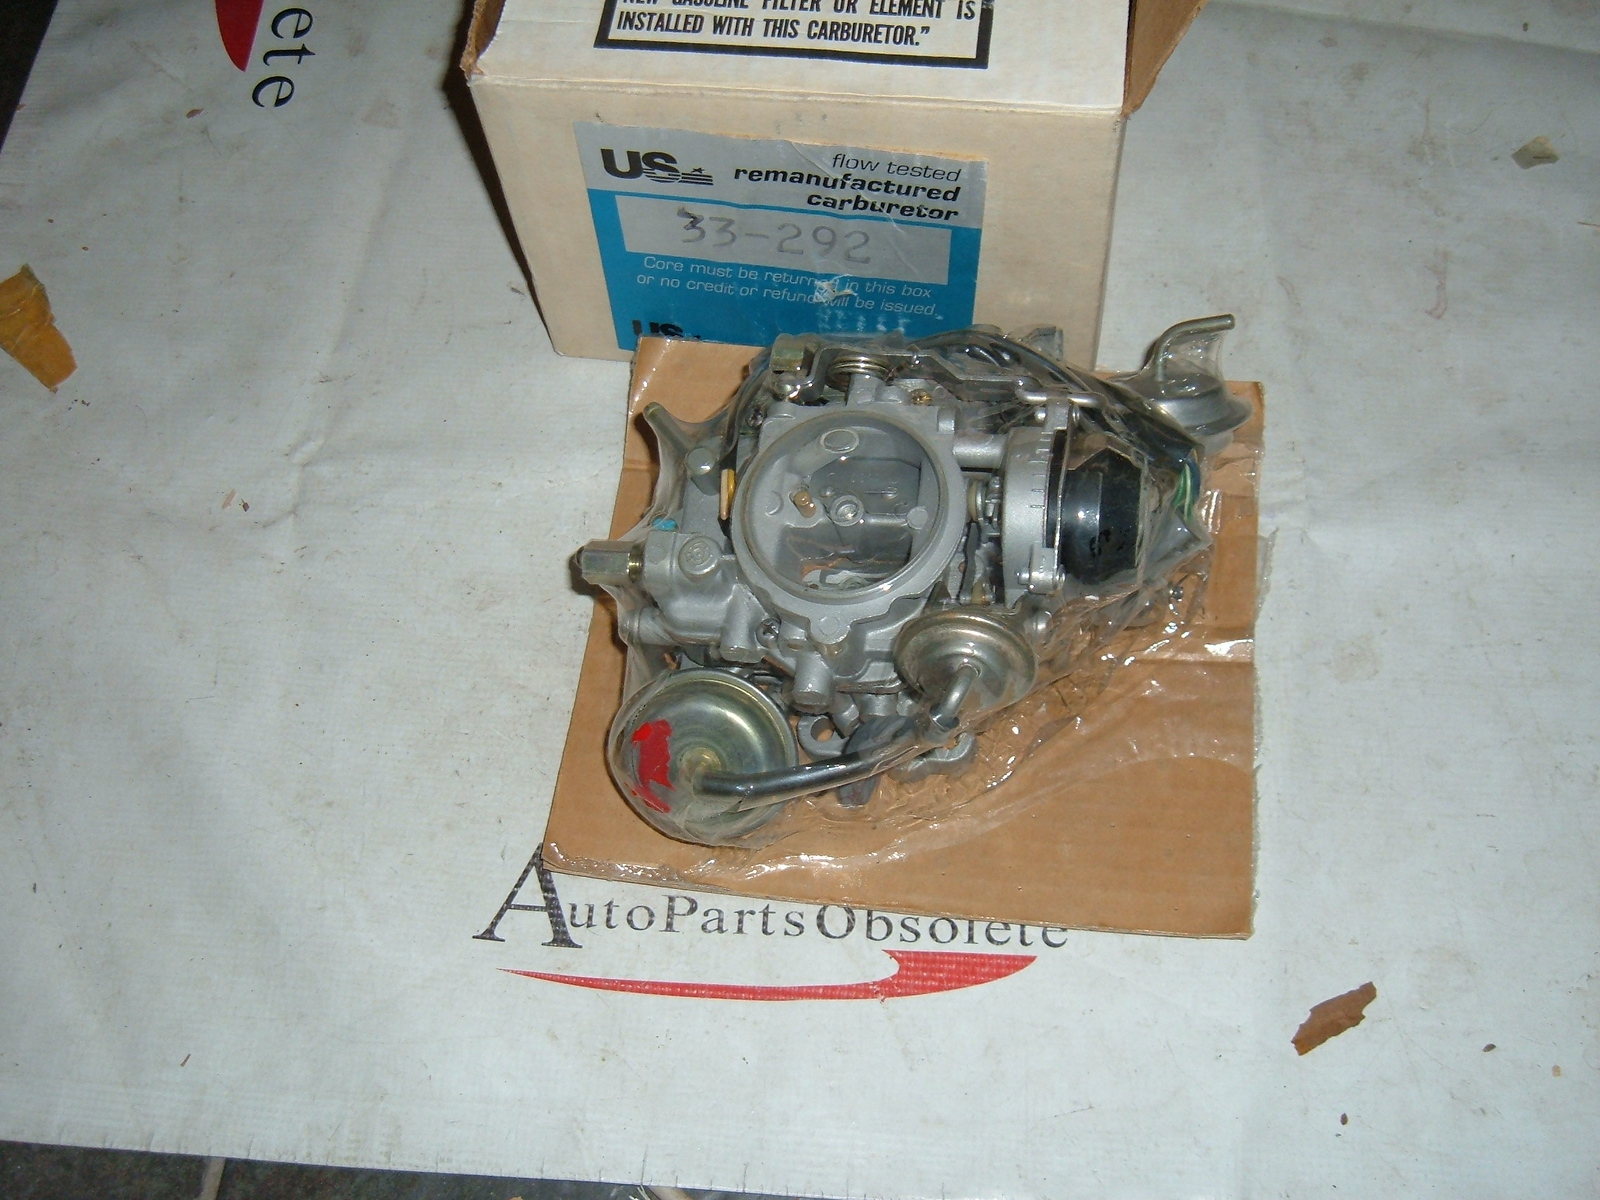 1978 dodge plymouth chrysler colt champ solex carburetor rebuilt (z 33292)